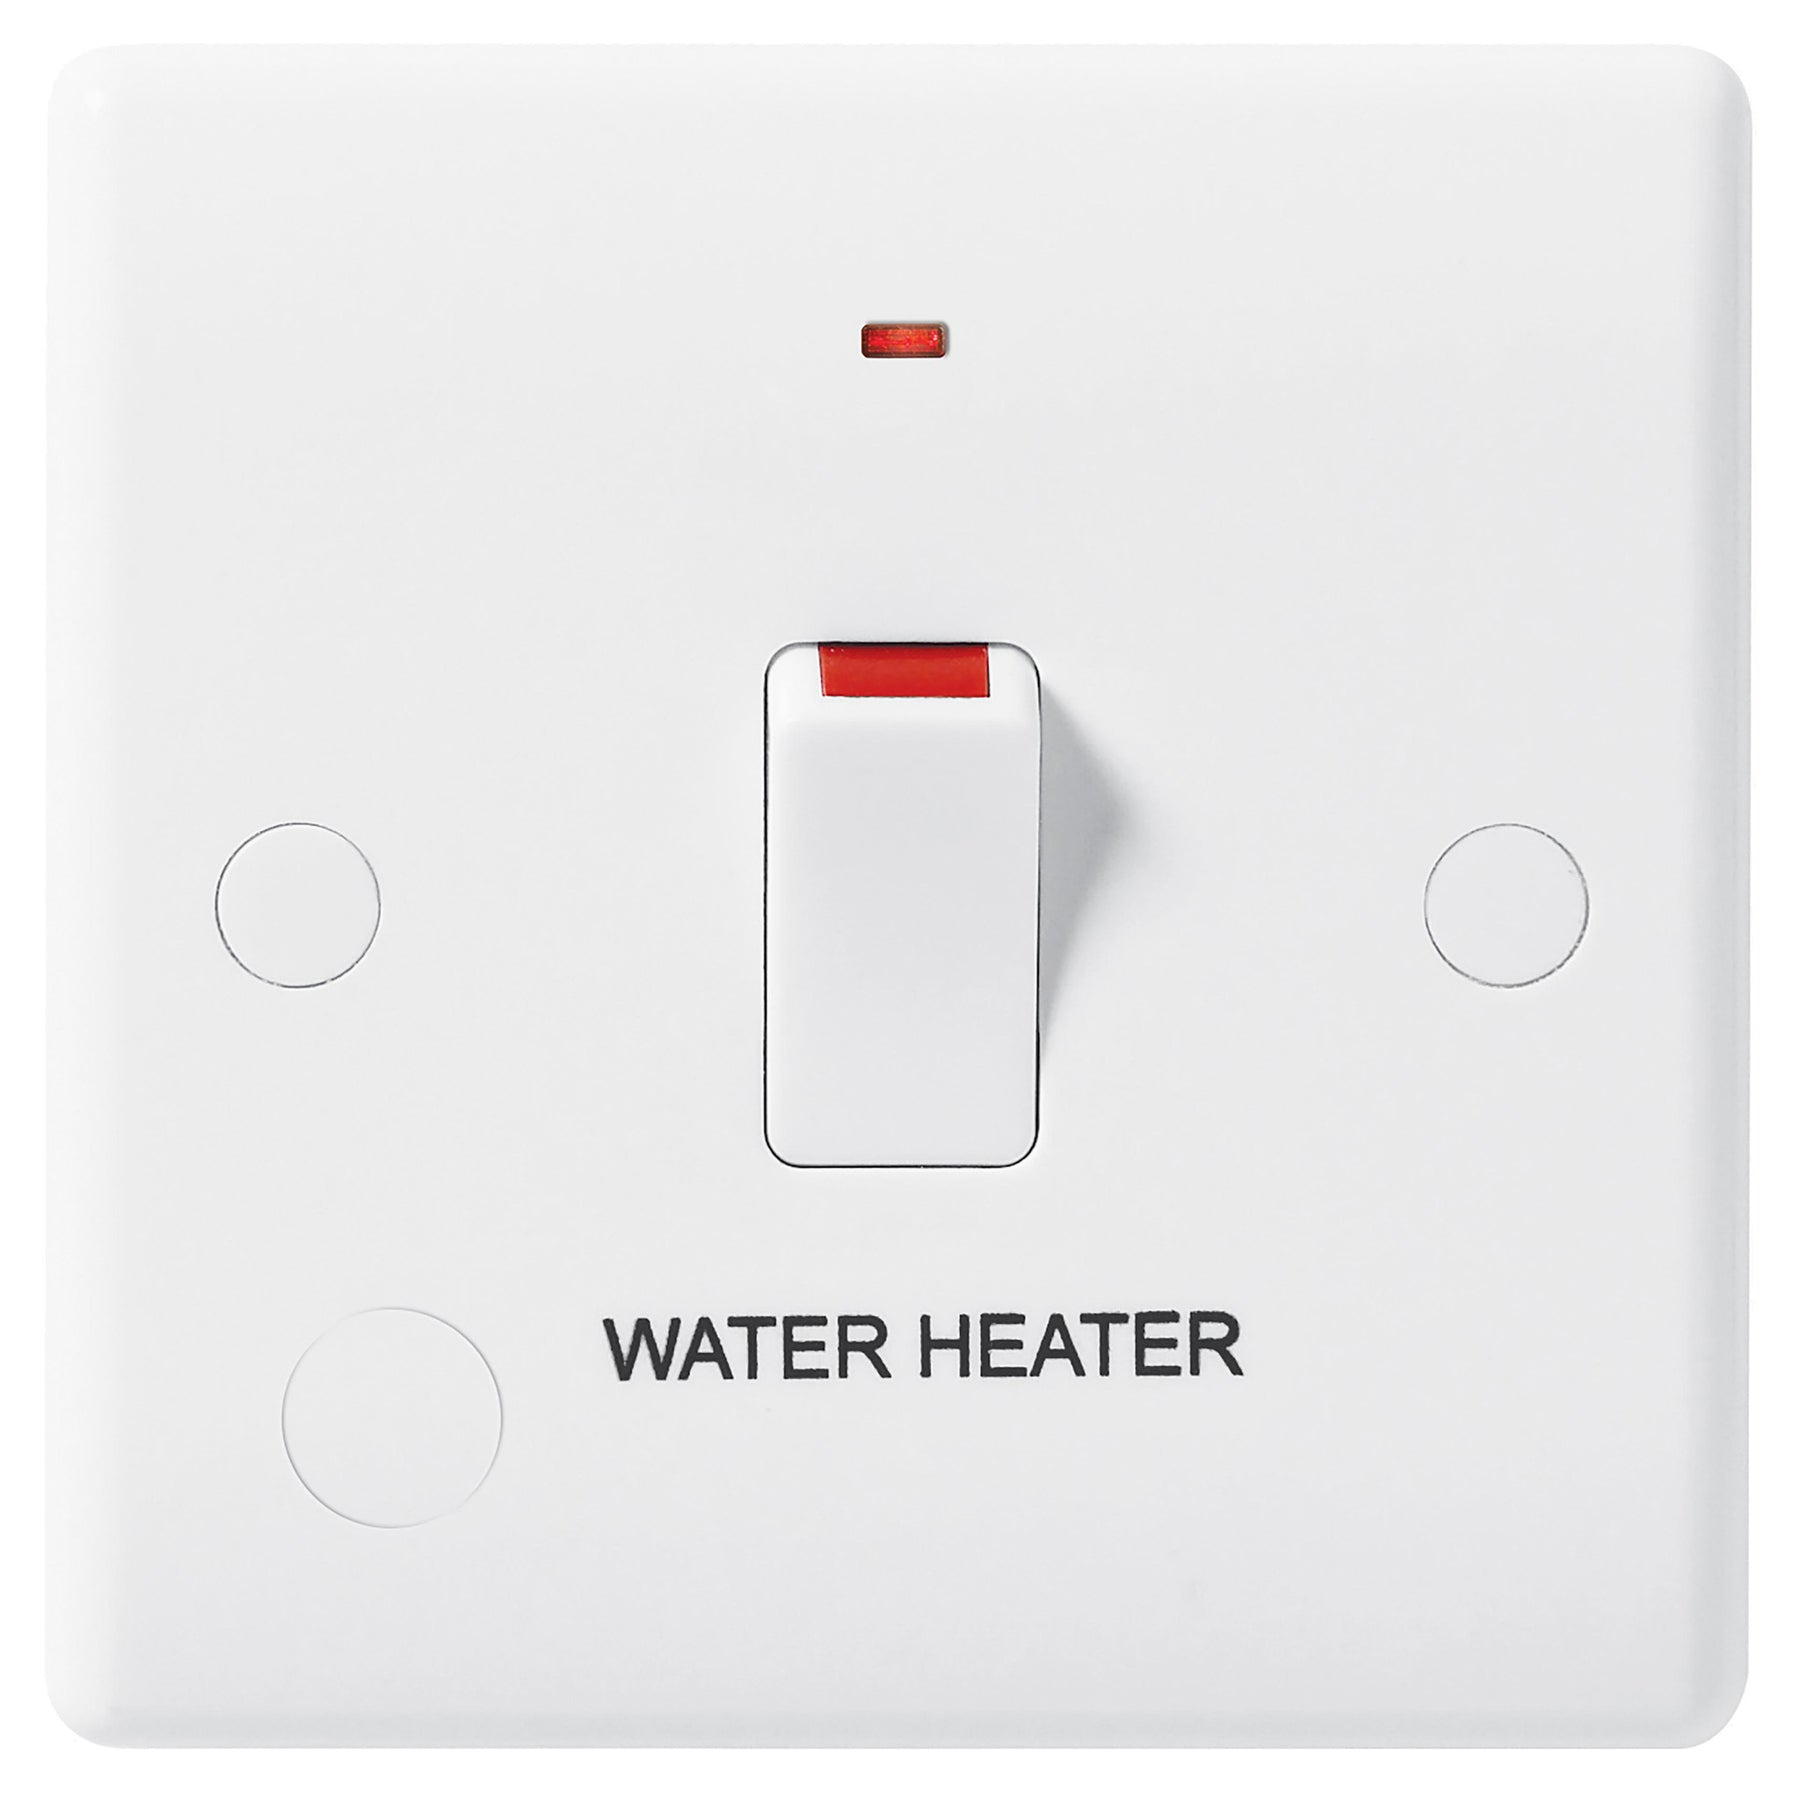 BG Nexus 833WH 20A Double Pole Switched With Indicator FLEX Outlet Labelled  *WATER HEATER* DEEP - BG - Sparks Warehouse